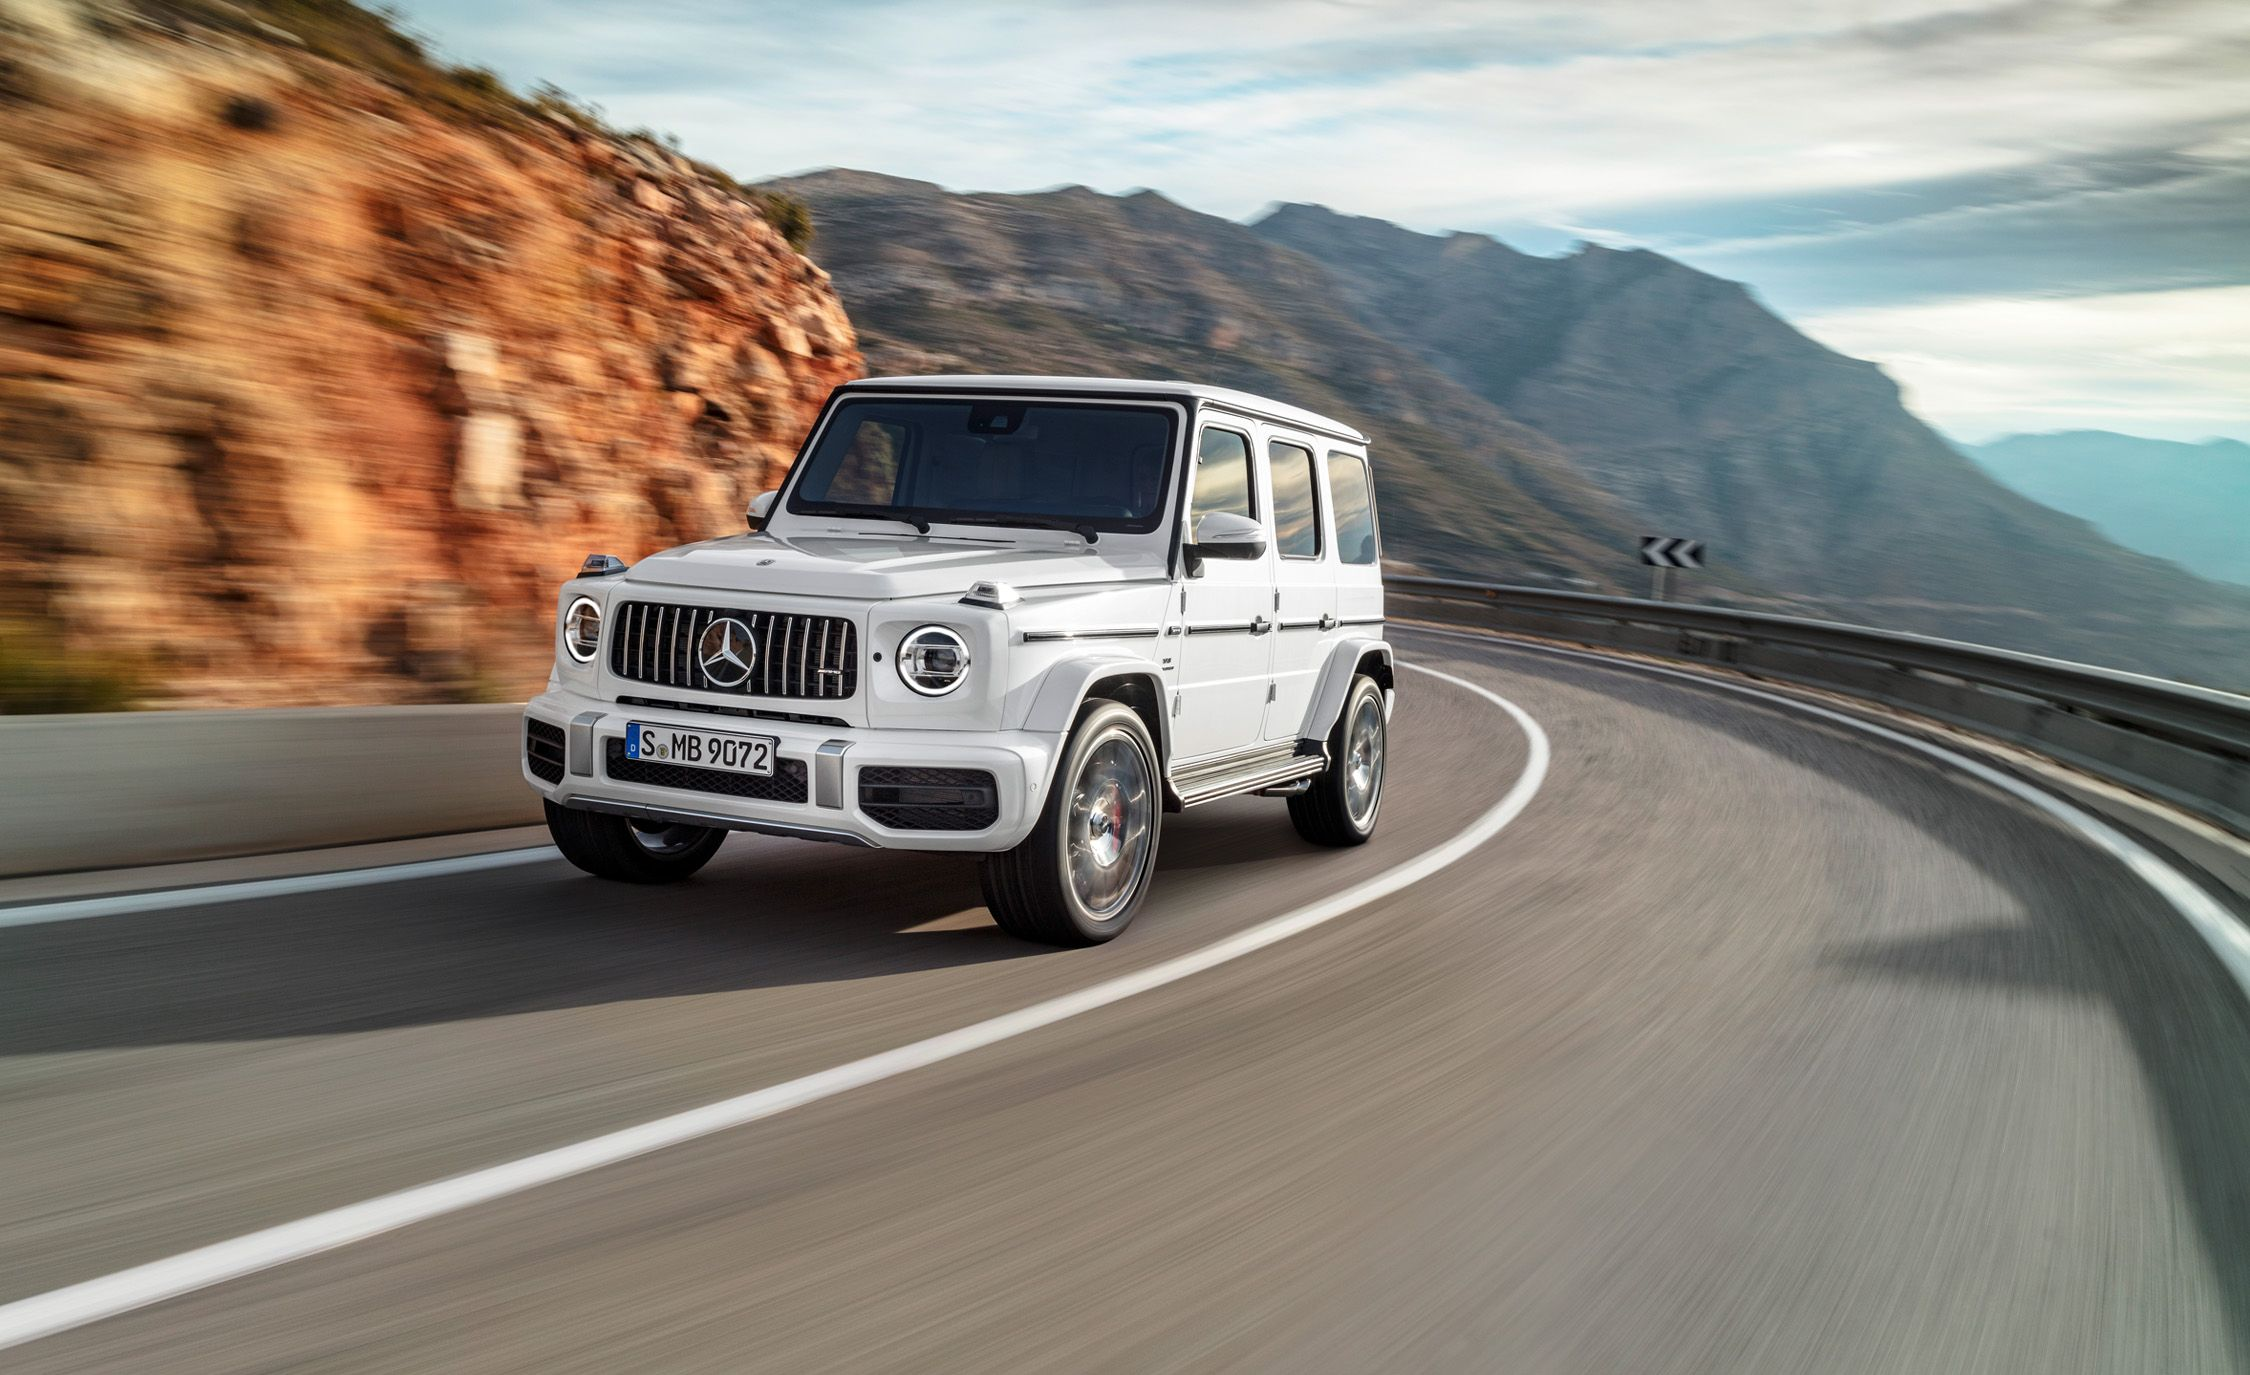 Mercedes Benz Rims >> 2019 Mercedes-AMG G63 Official Photos and Info | News | Car and Driver